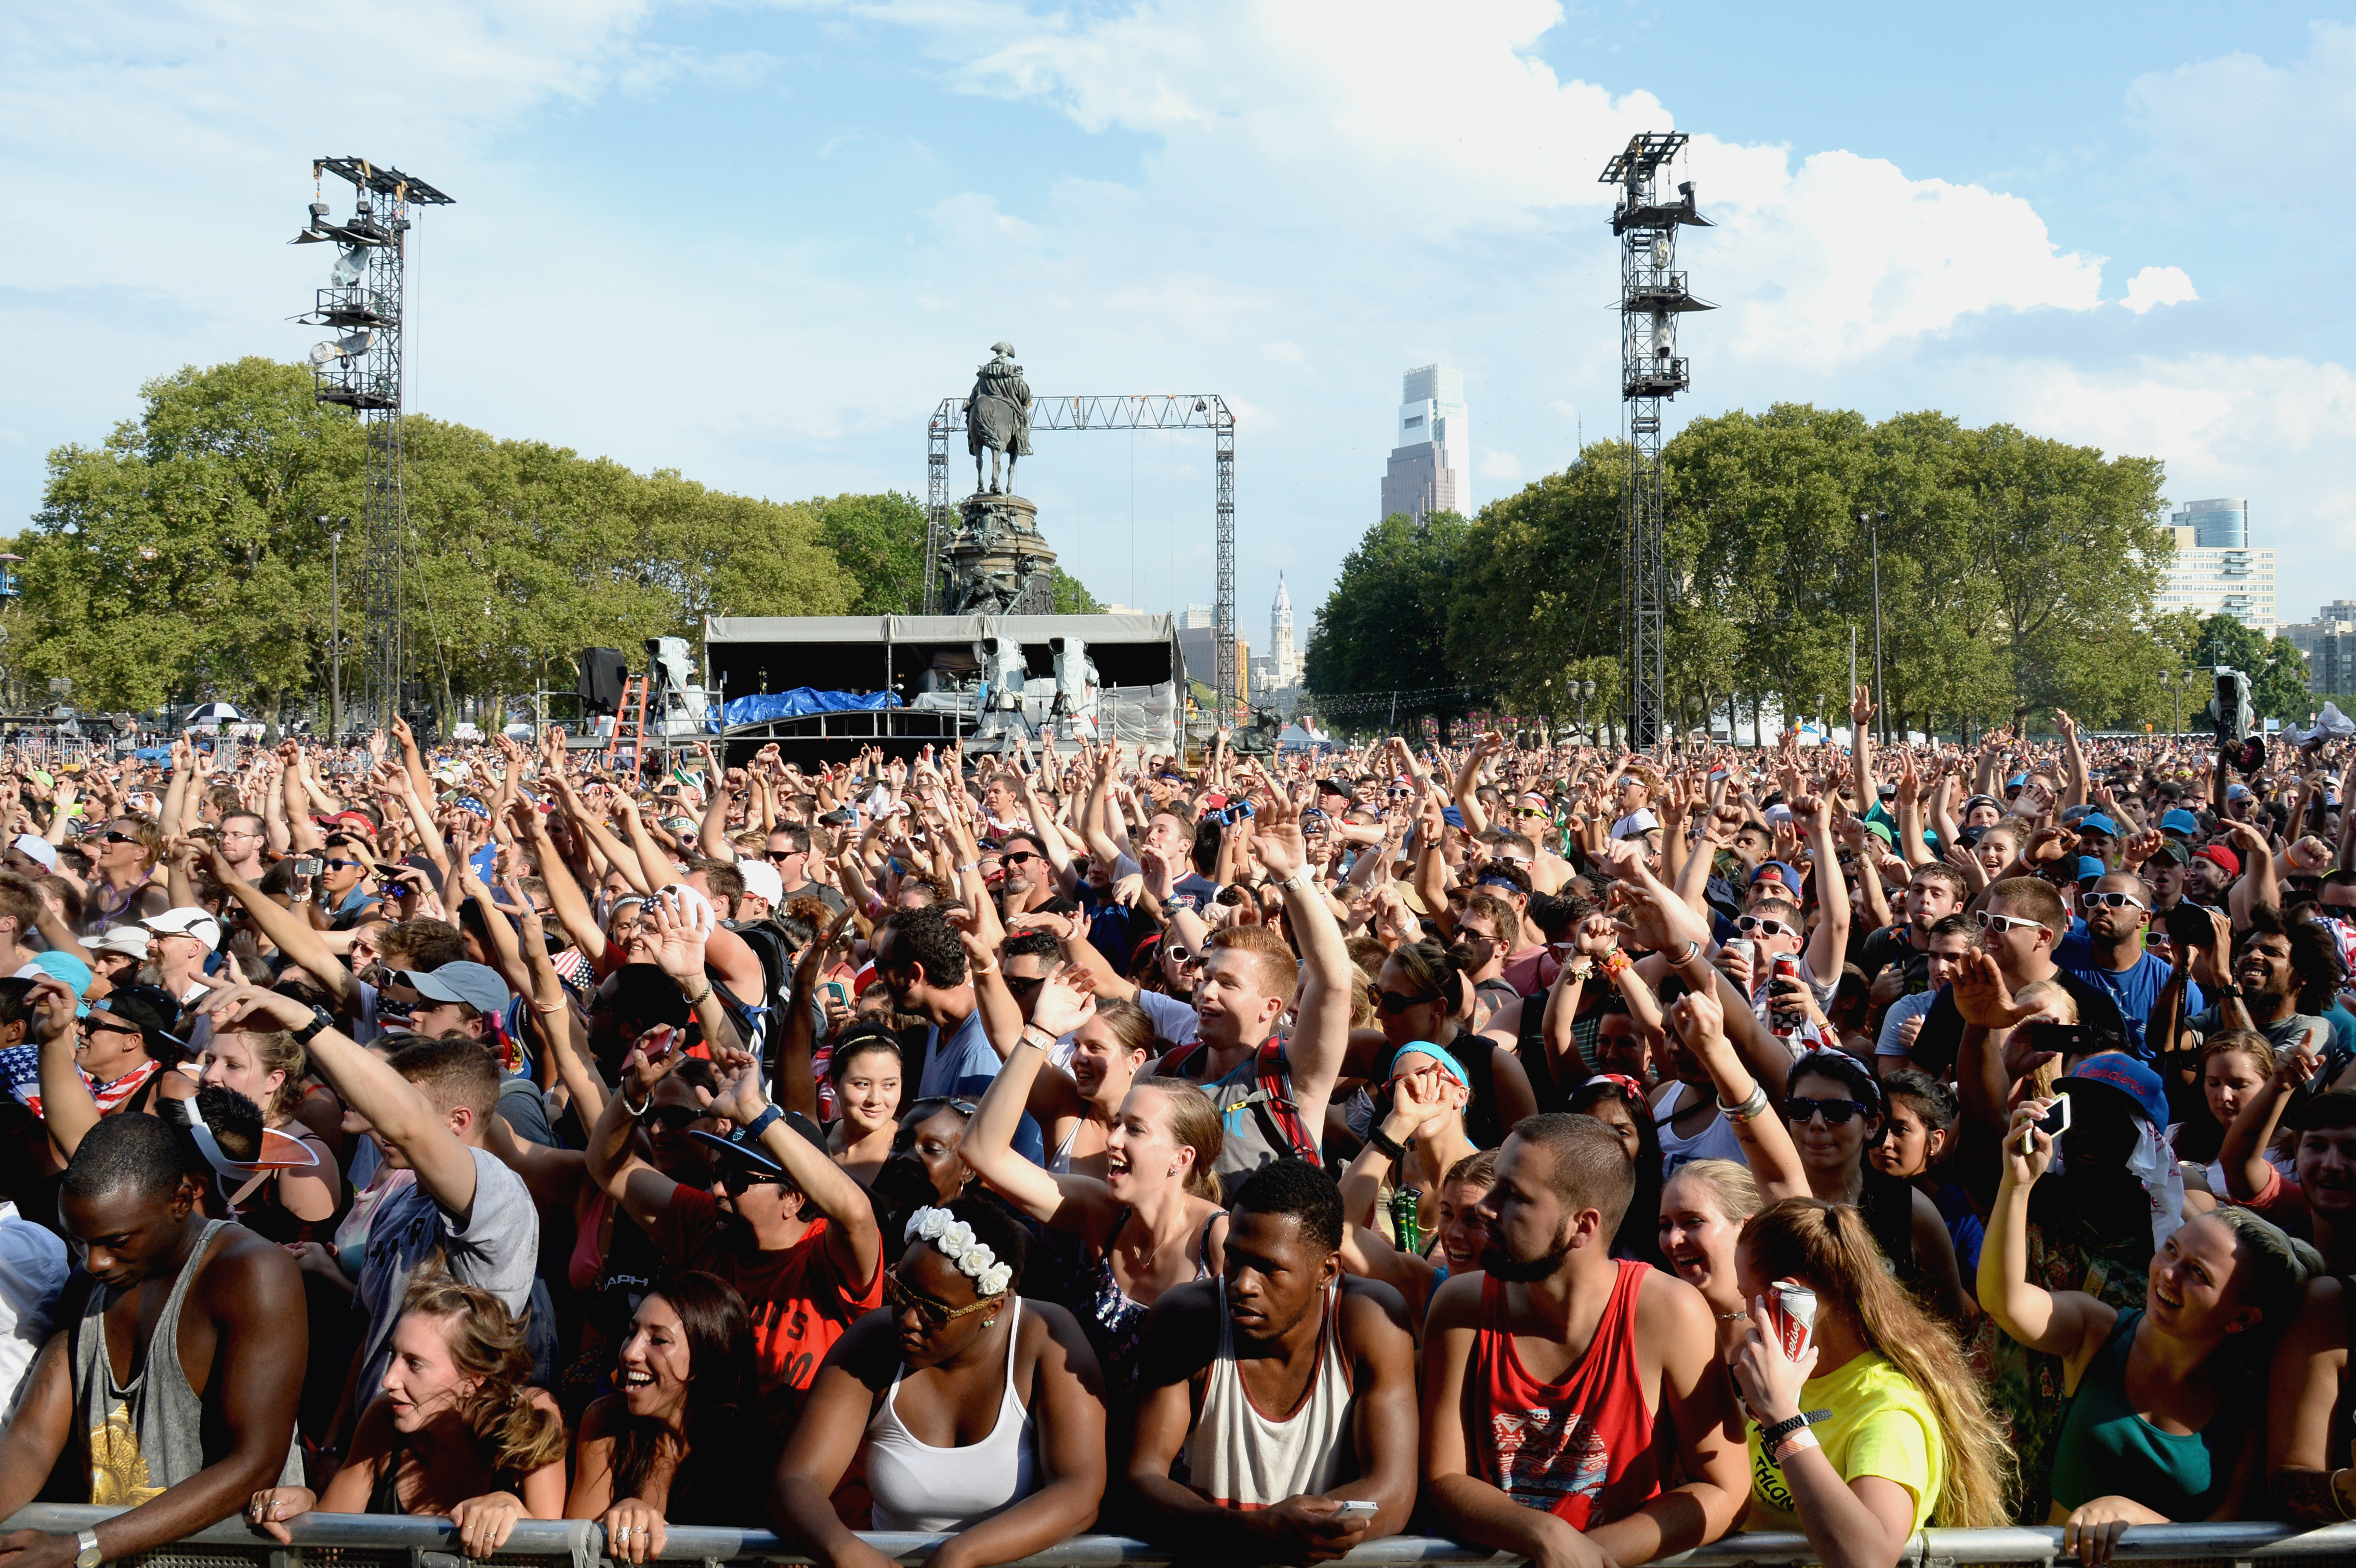 A general view of atmosphere at the 2014 Budweiser Made In America Festival at Benjamin Franklin Parkway on August 30, 2014 in Philadelphia, Pennsylvania.